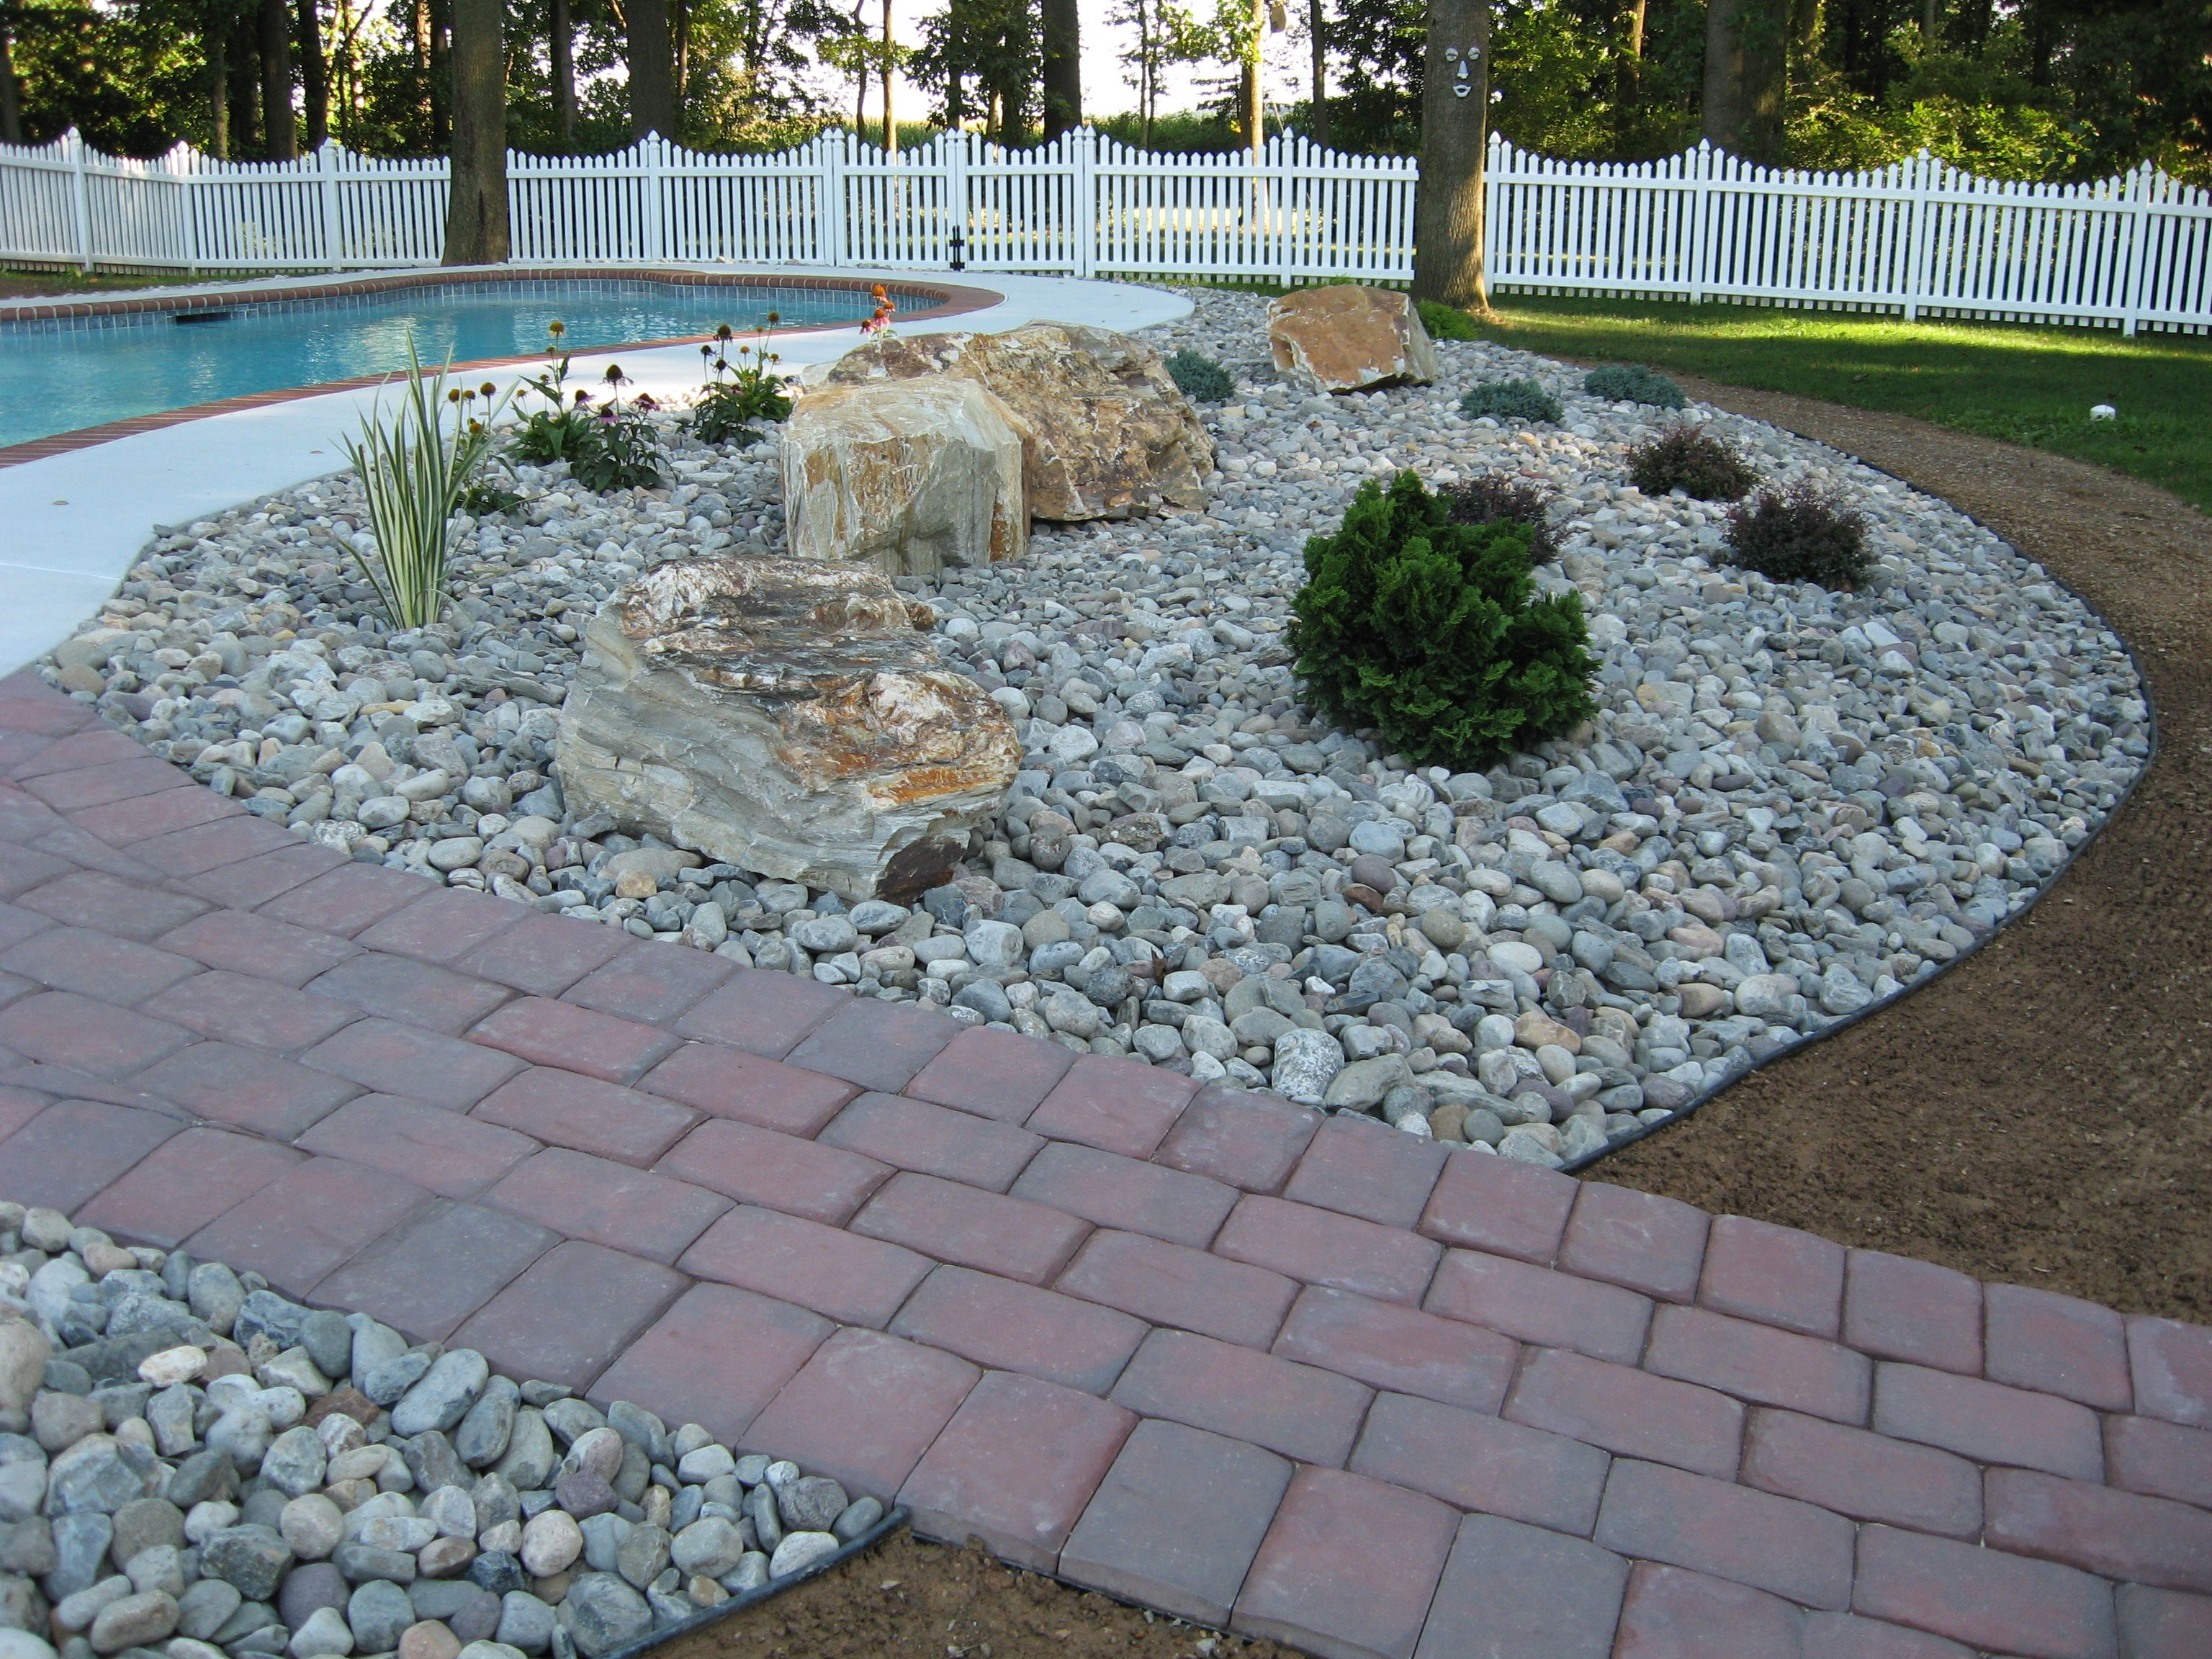 Landscaping With Rocks And Pebbles : With rocks stone landscaping river stones garden